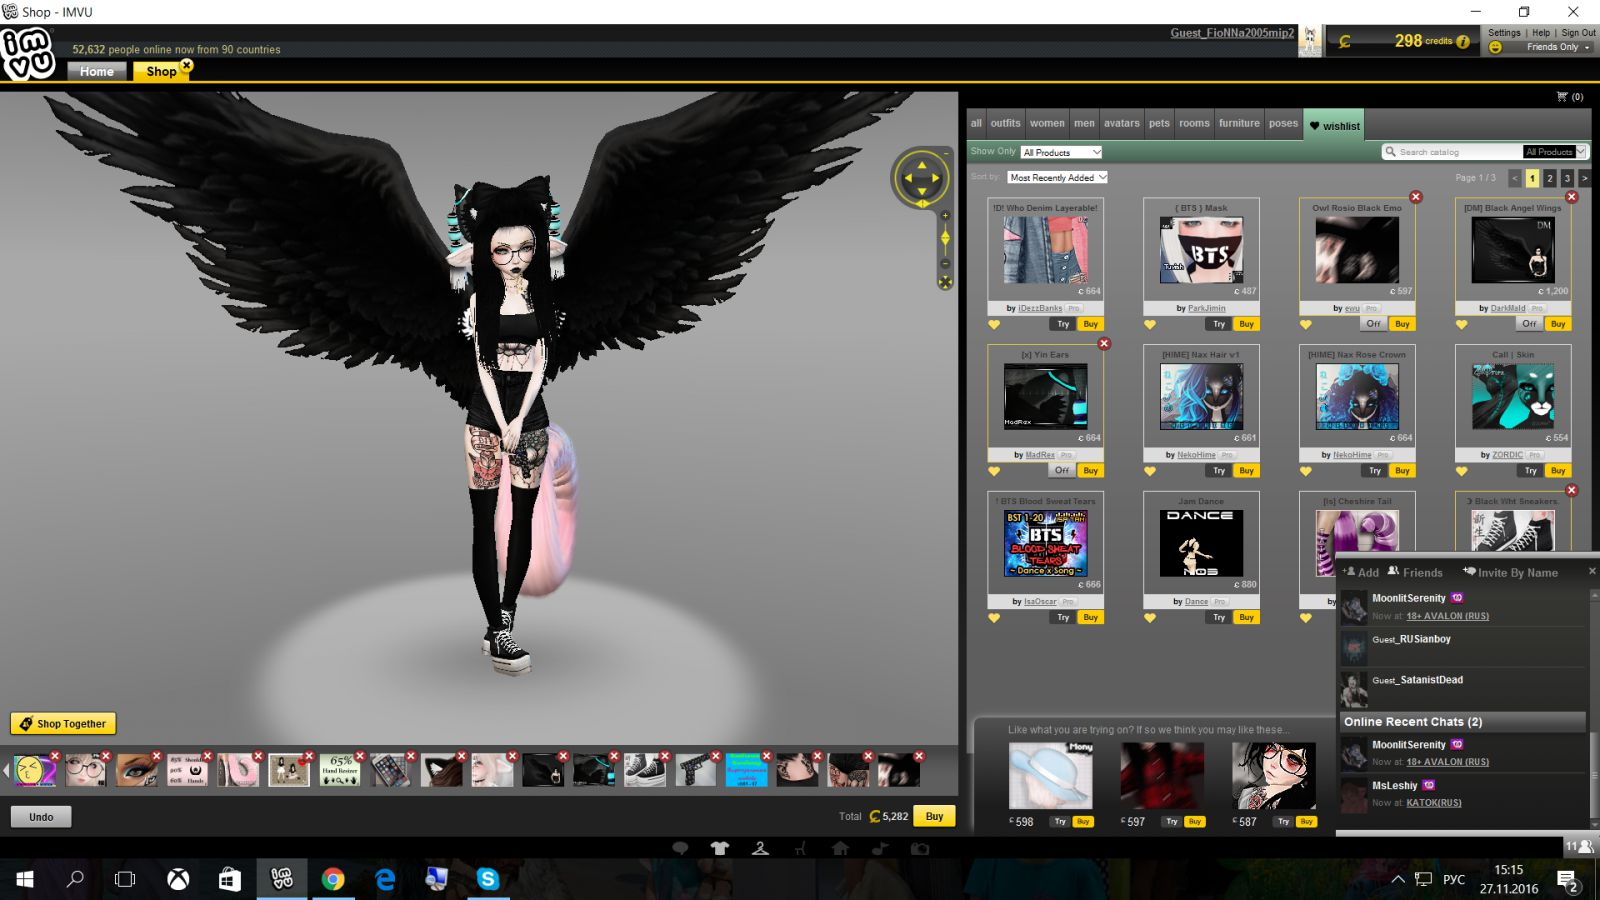 IMVU Customization